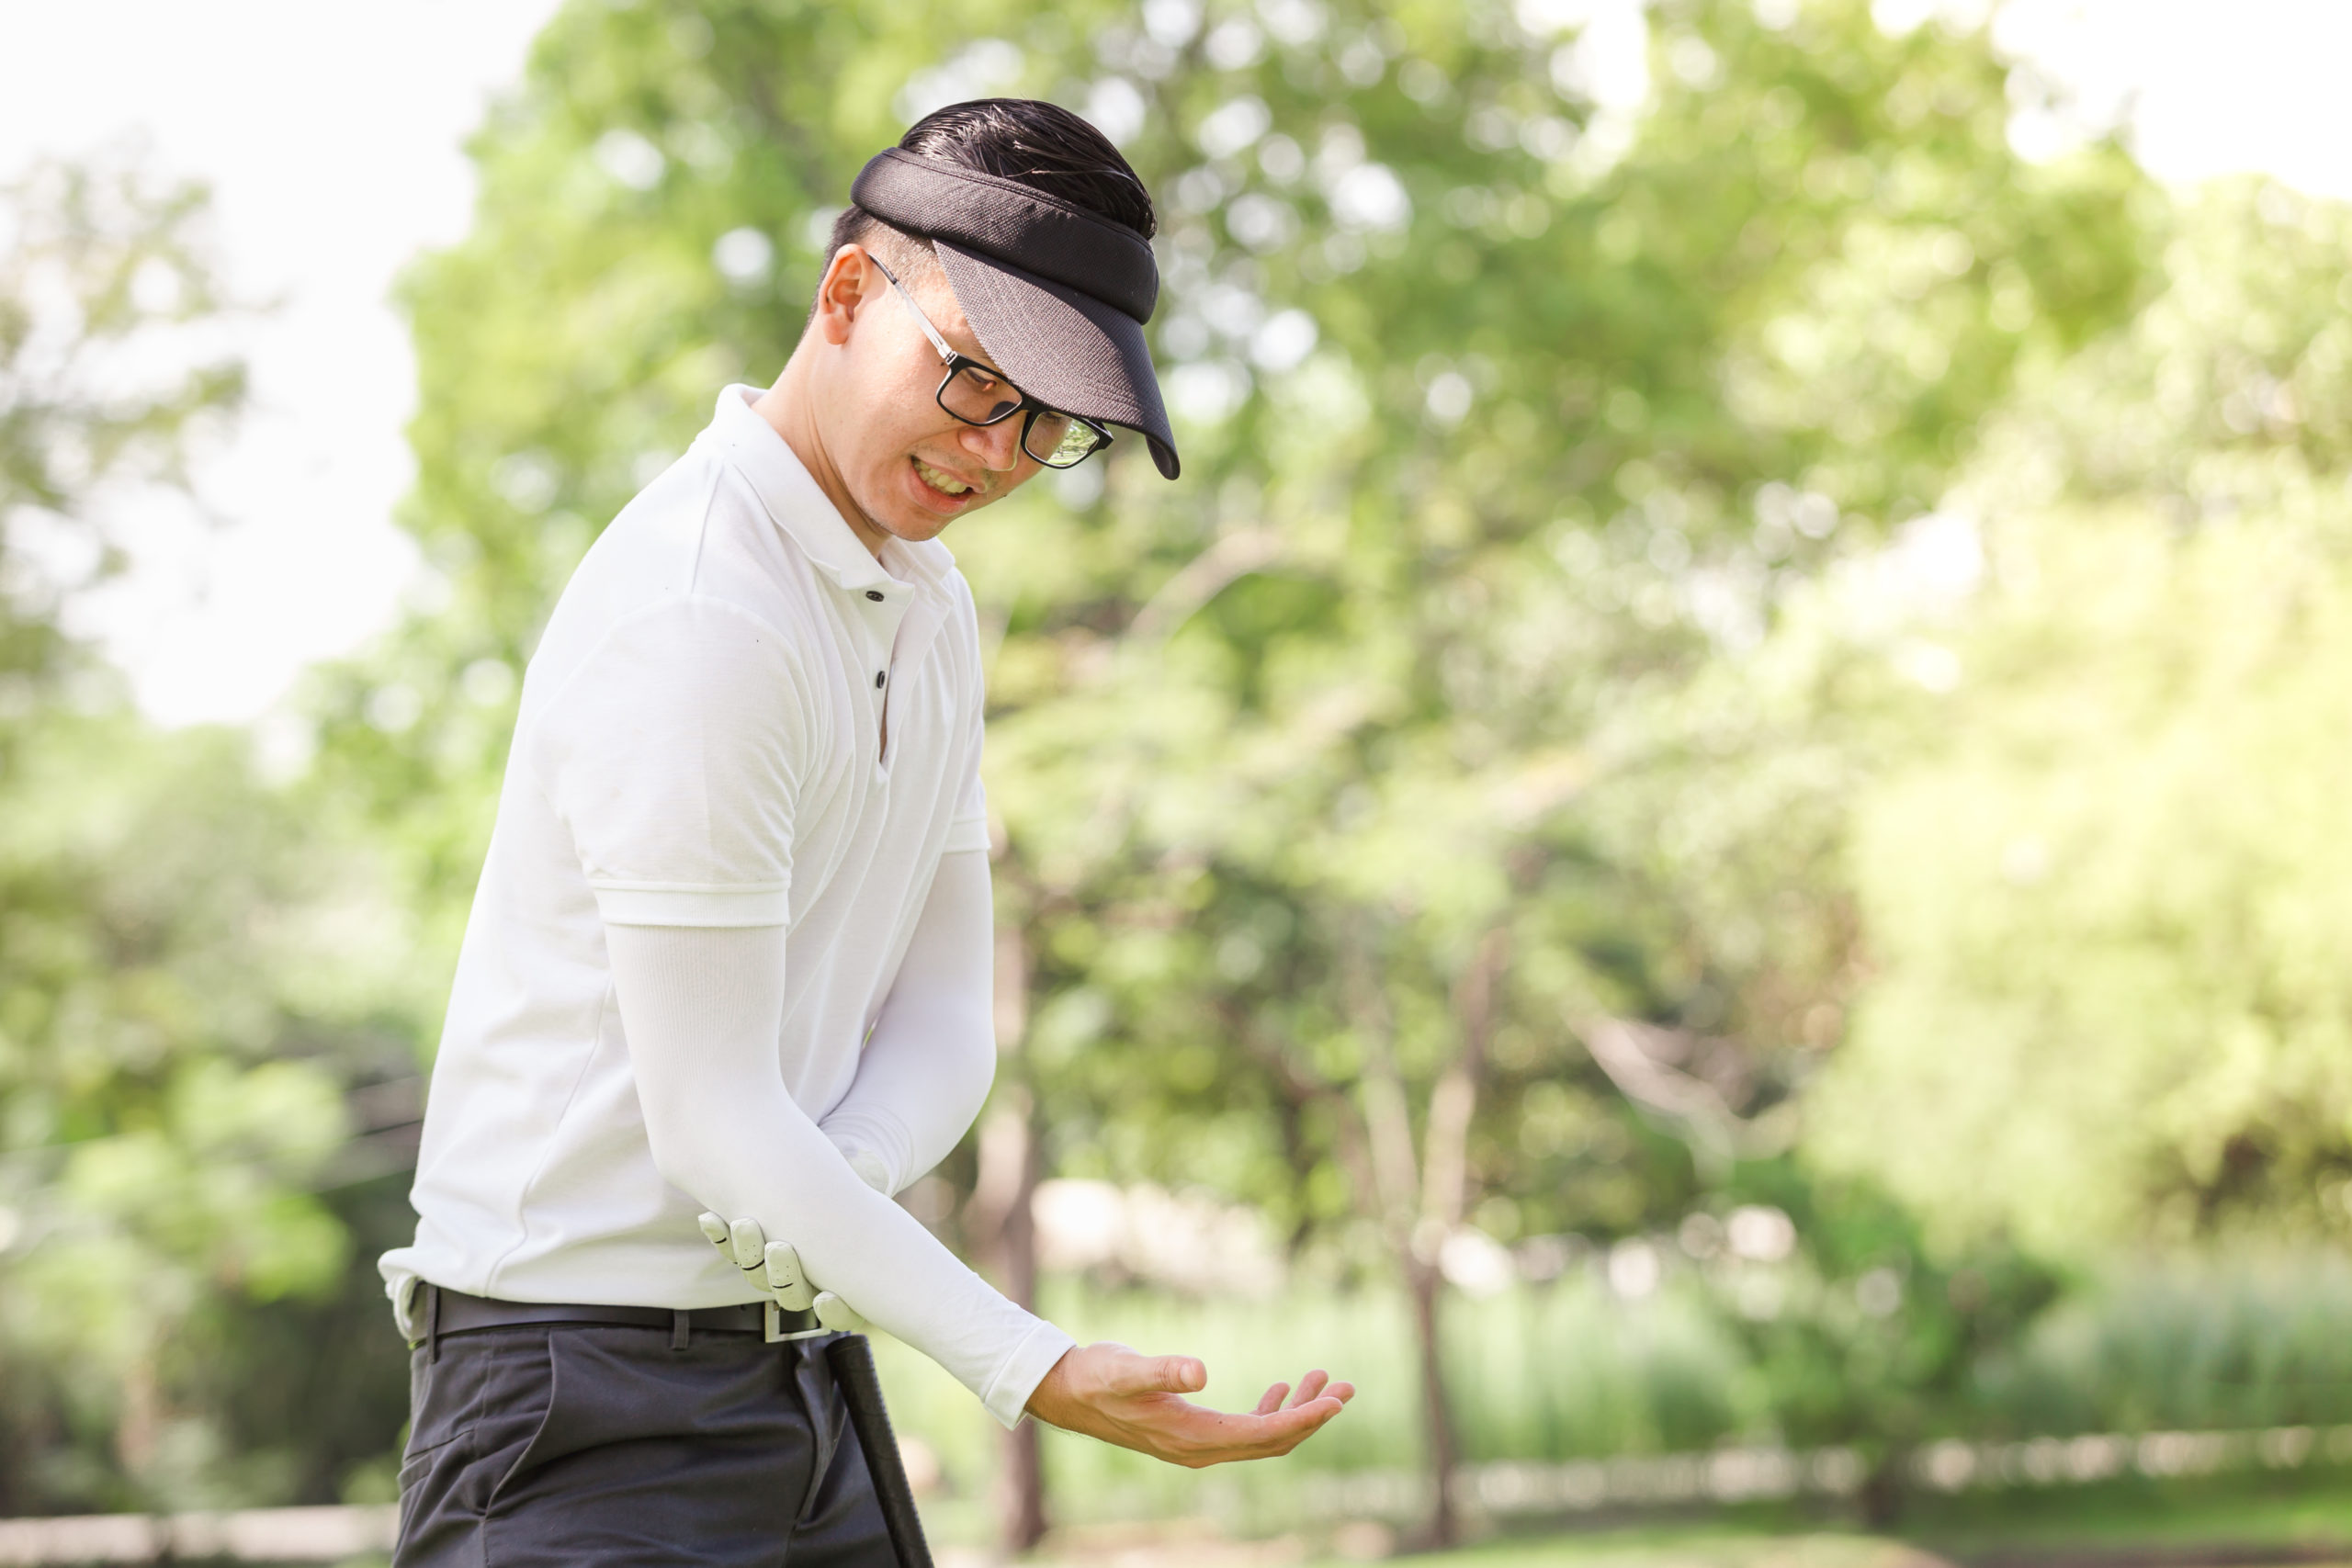 What Causes Golfers Elbow